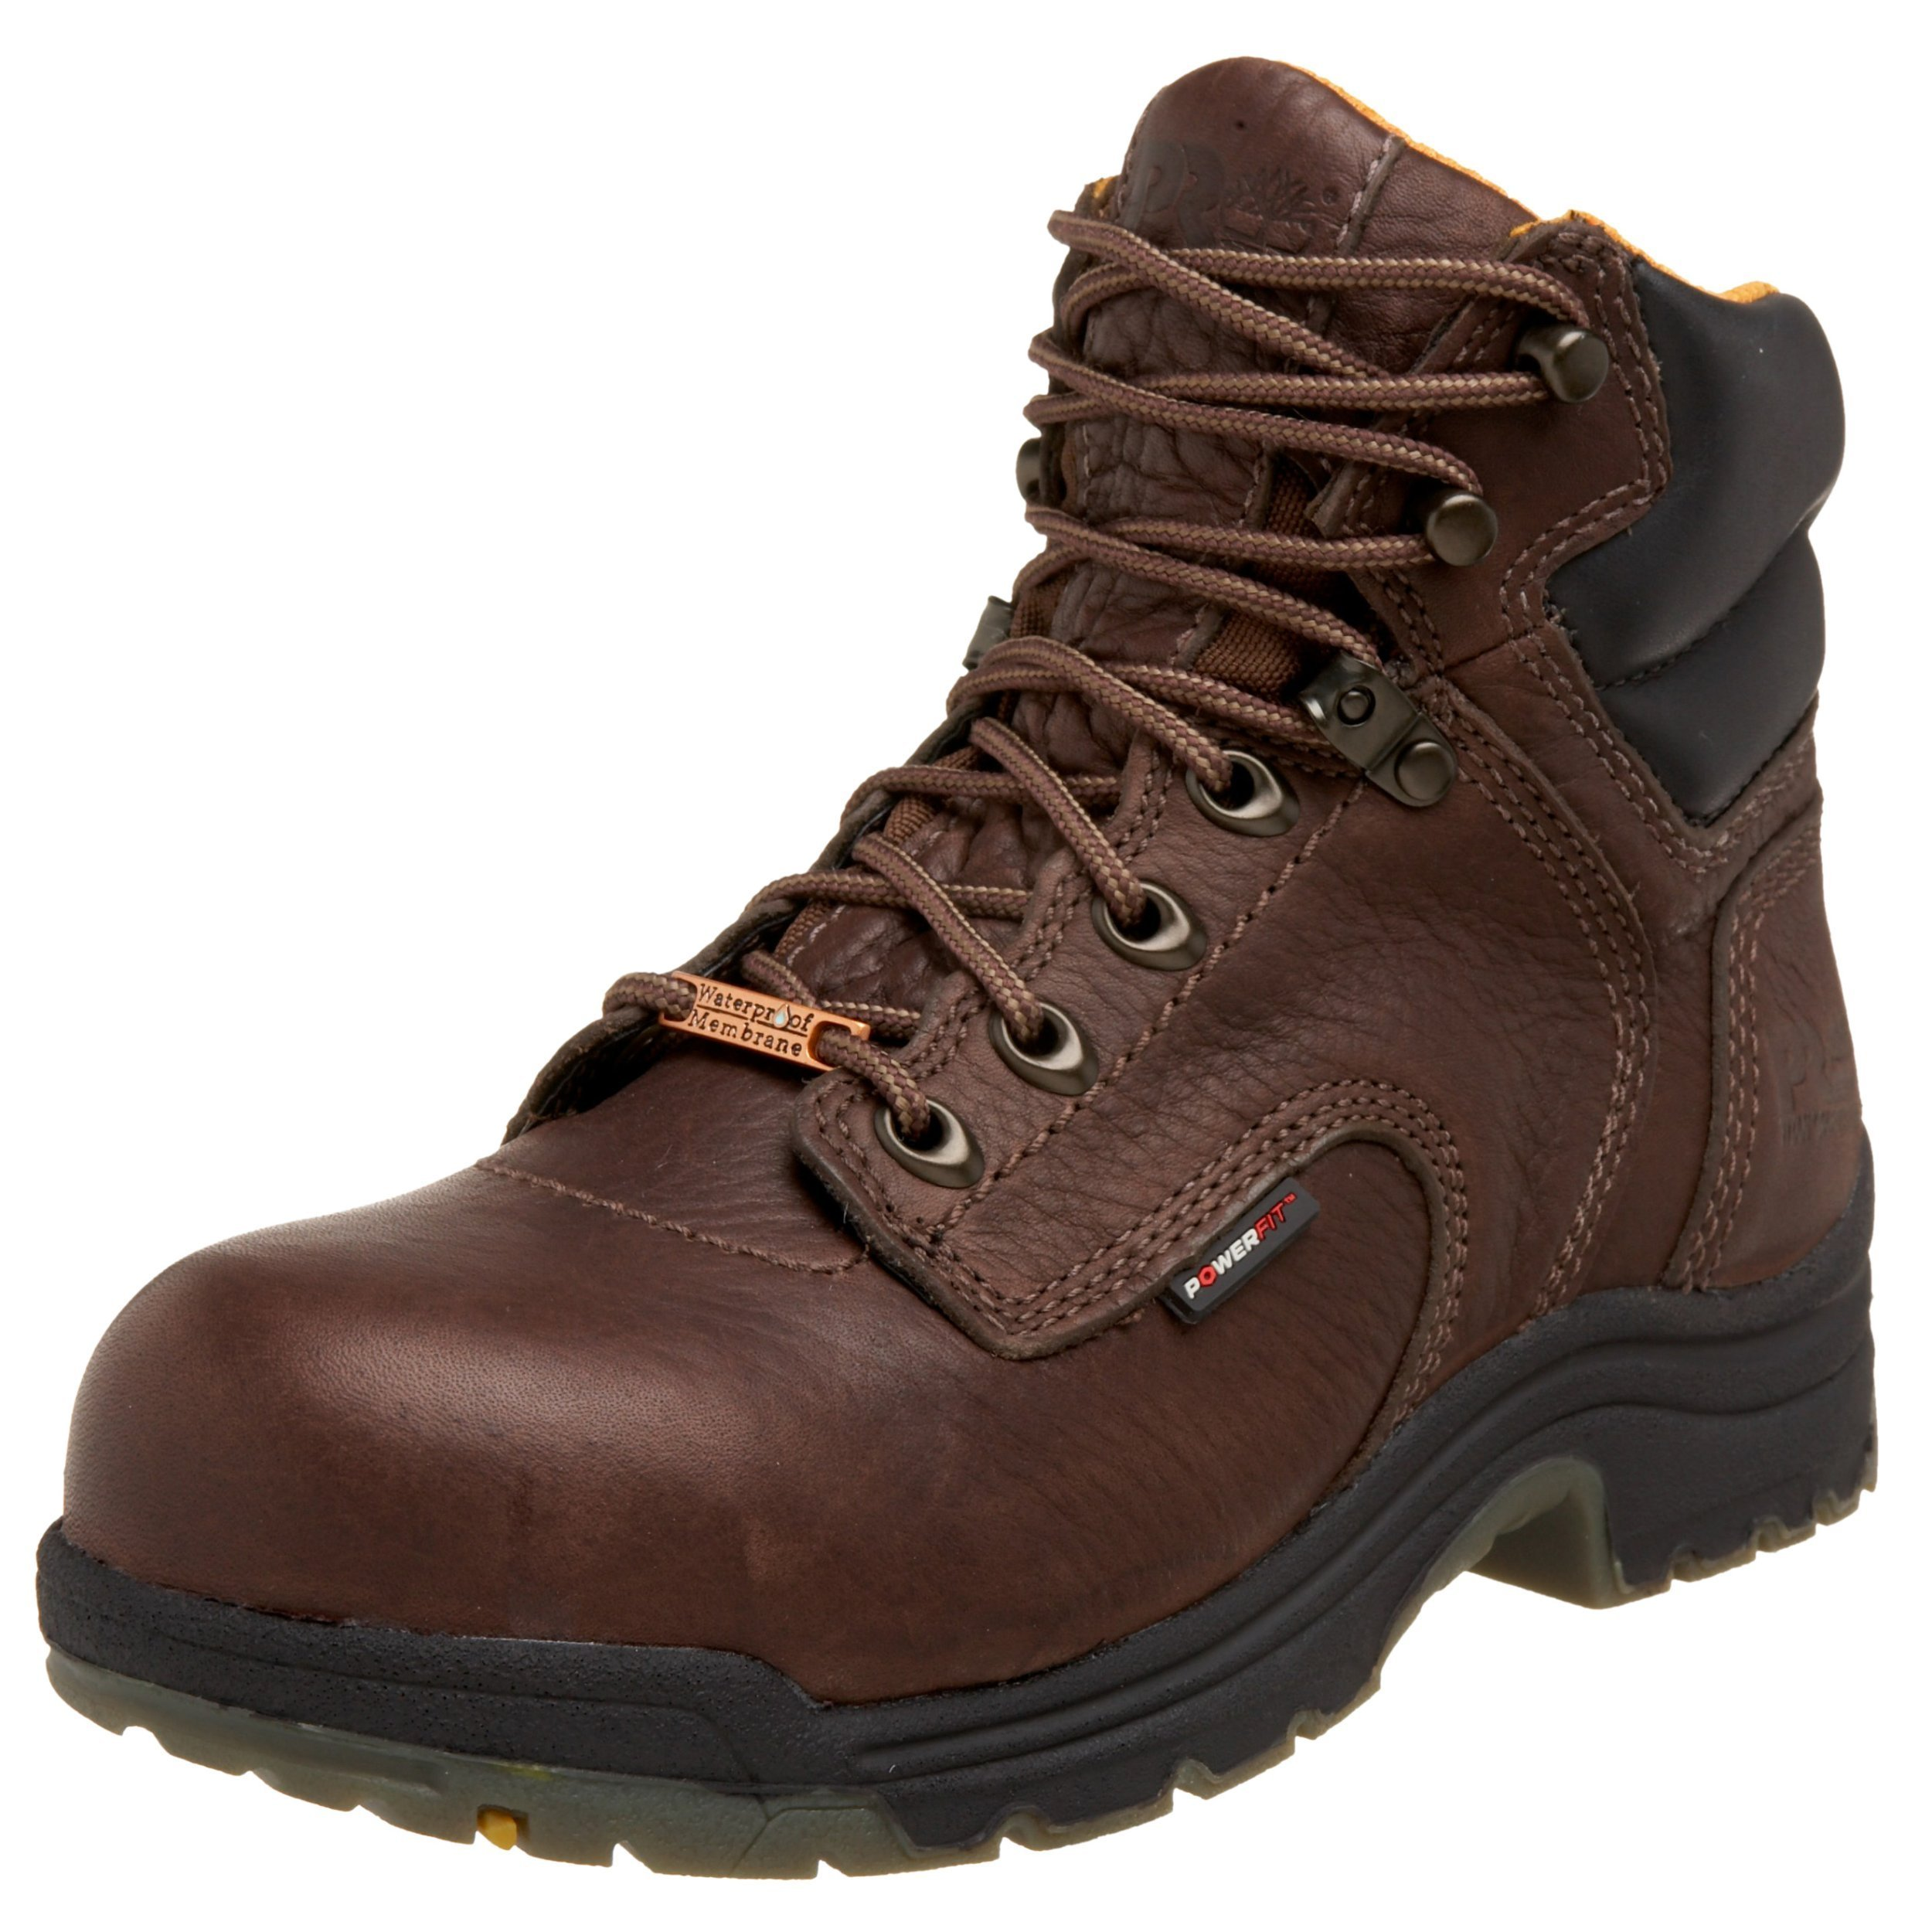 Timberland PRO Women's Titan WaterProof Boot,Brown,7 M US